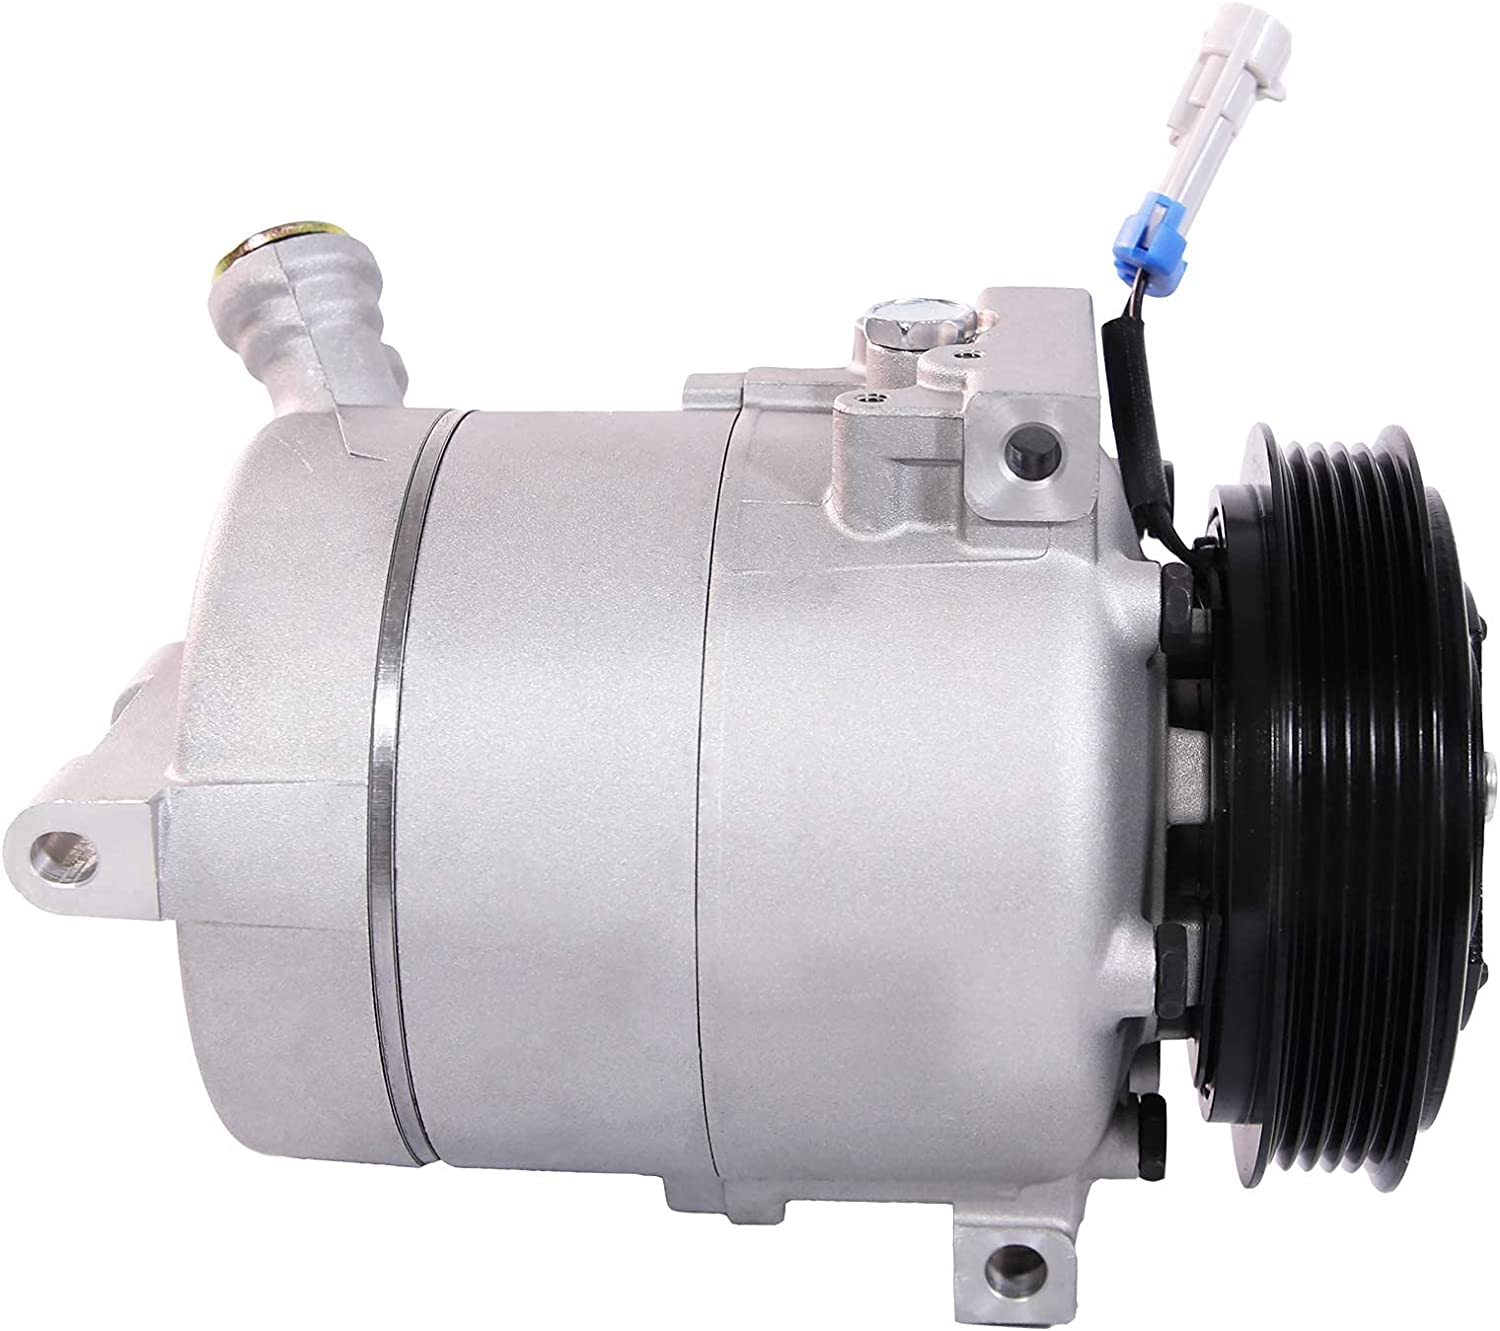 BOERLKY US Warehouse Air Conditioning 67% OFF of fixed price AC Sale item A Compressor Clut and C